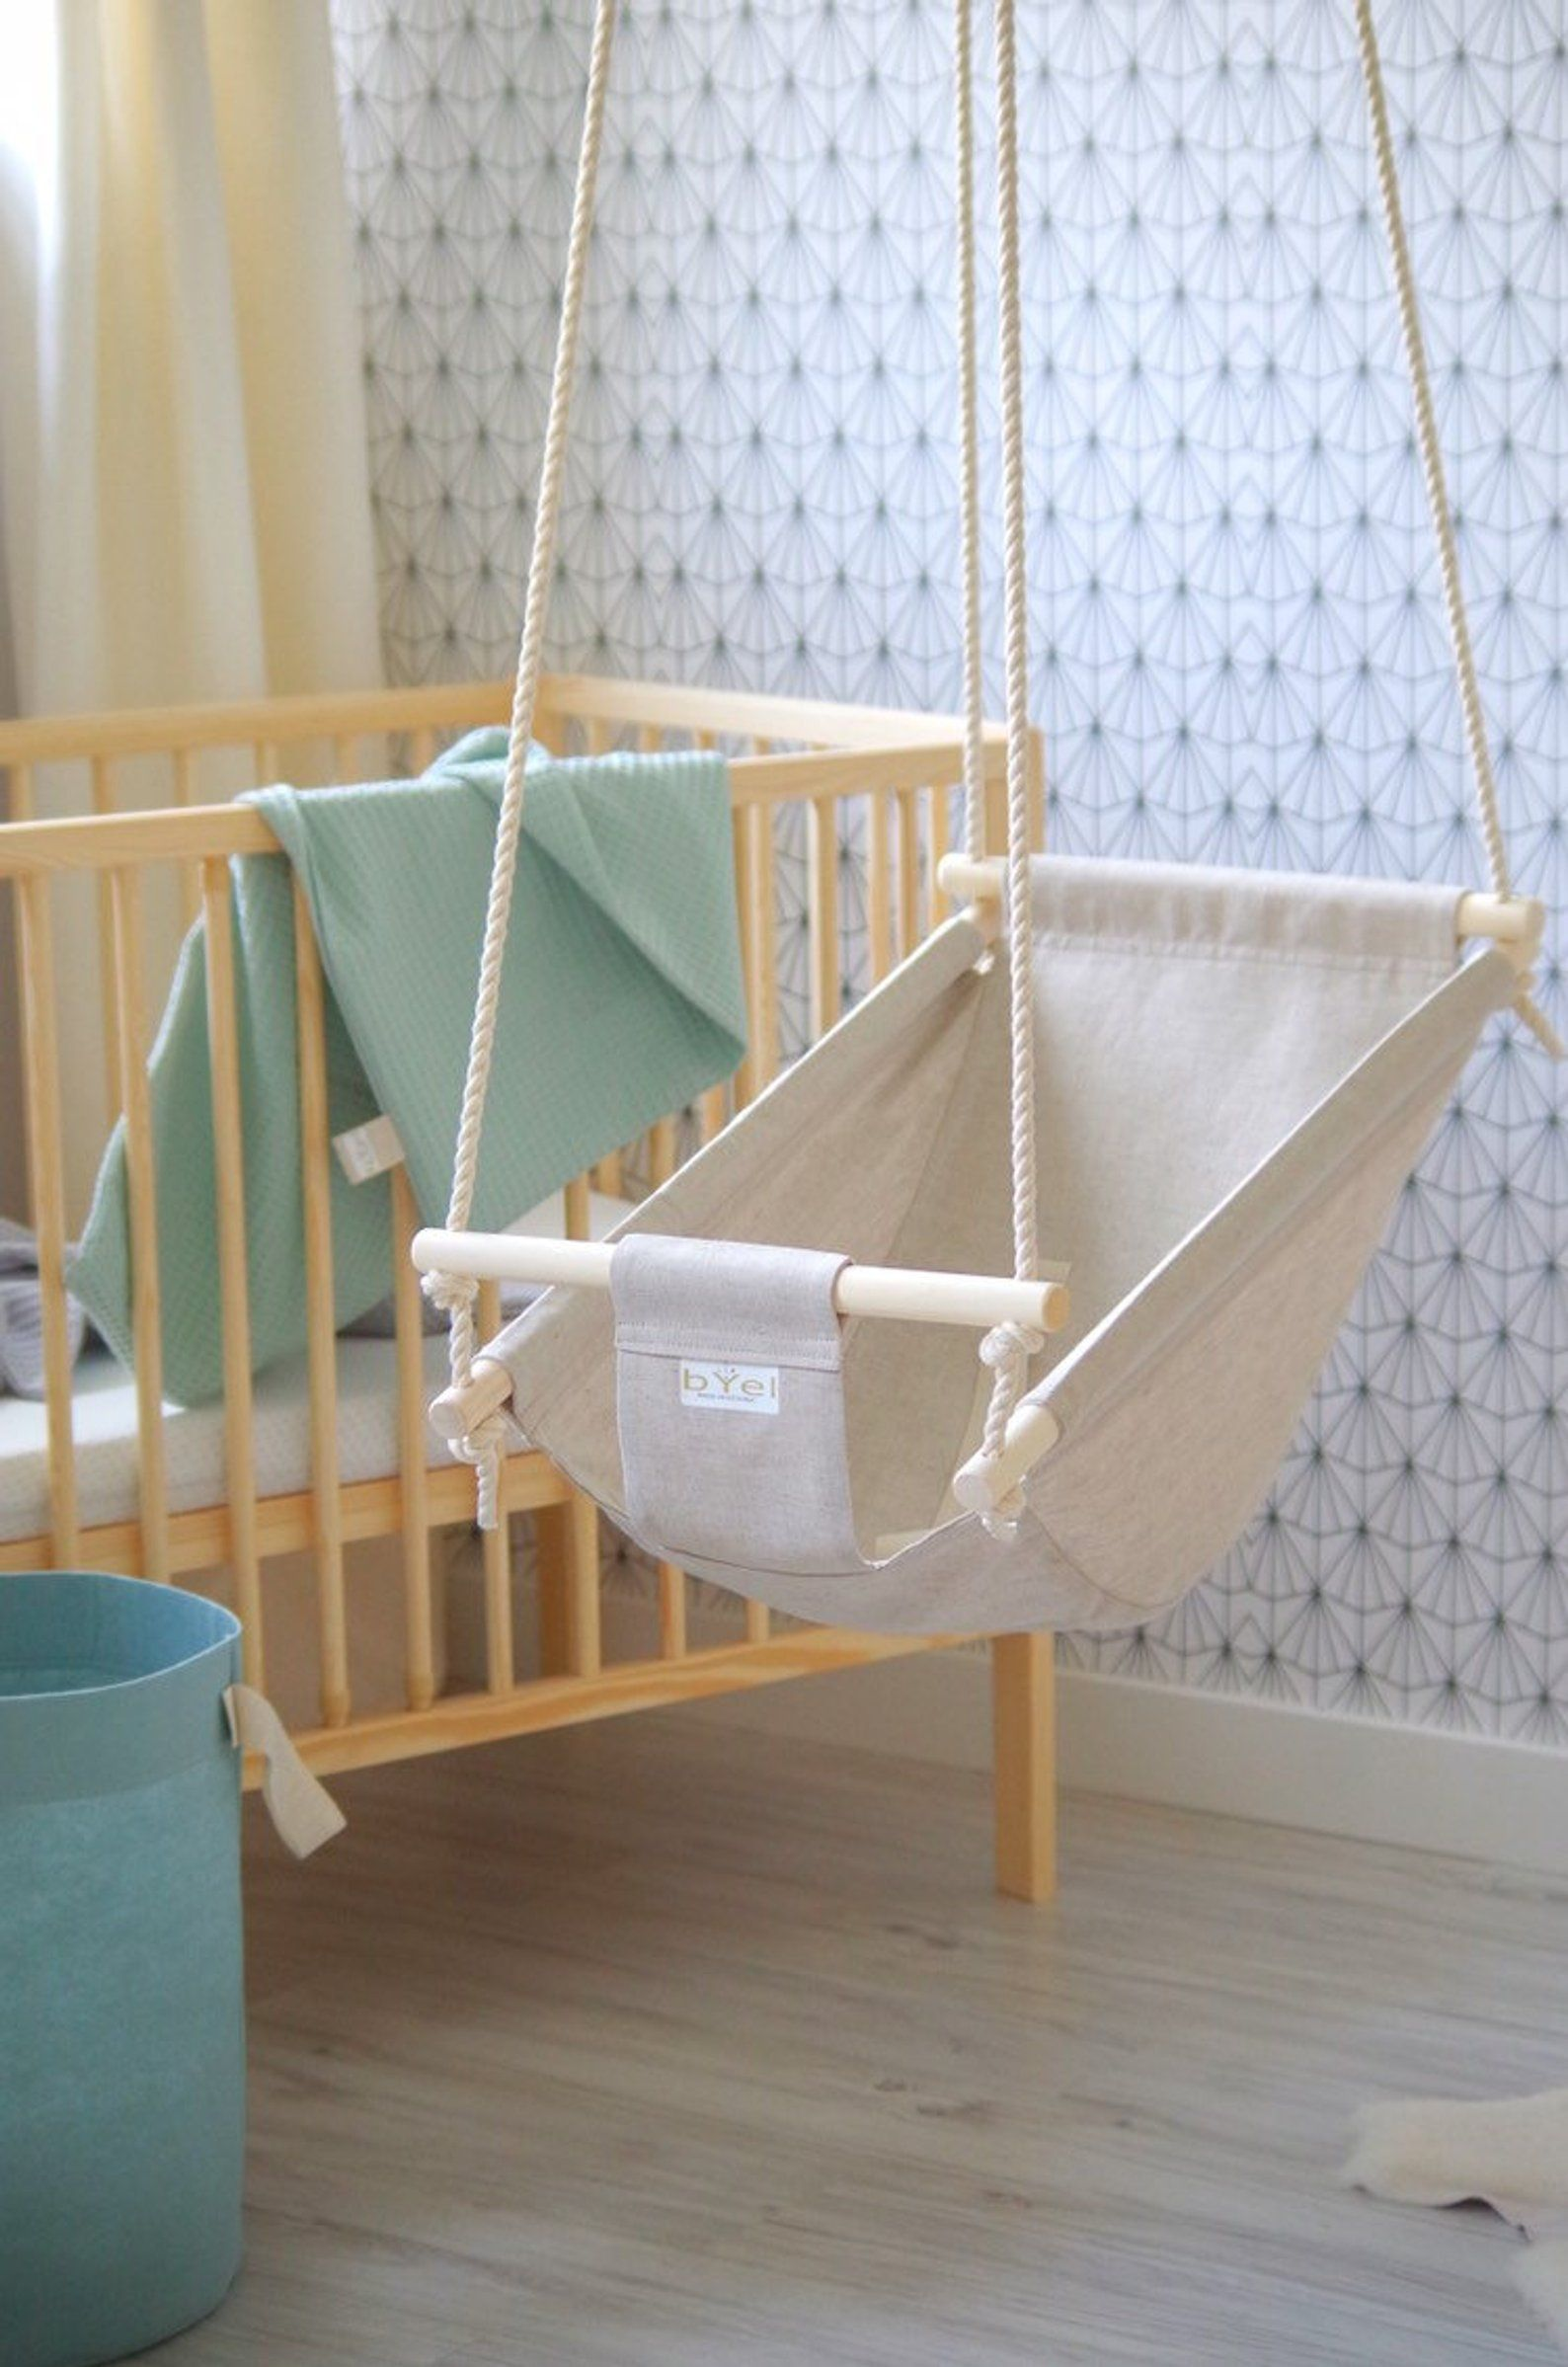 Low Shipping Price Byel Calm Toddler Baby Gift Swing Baby Swing Swing Chair Etsy Baby Swings Baby Nursery Decor Nursery Baby Room